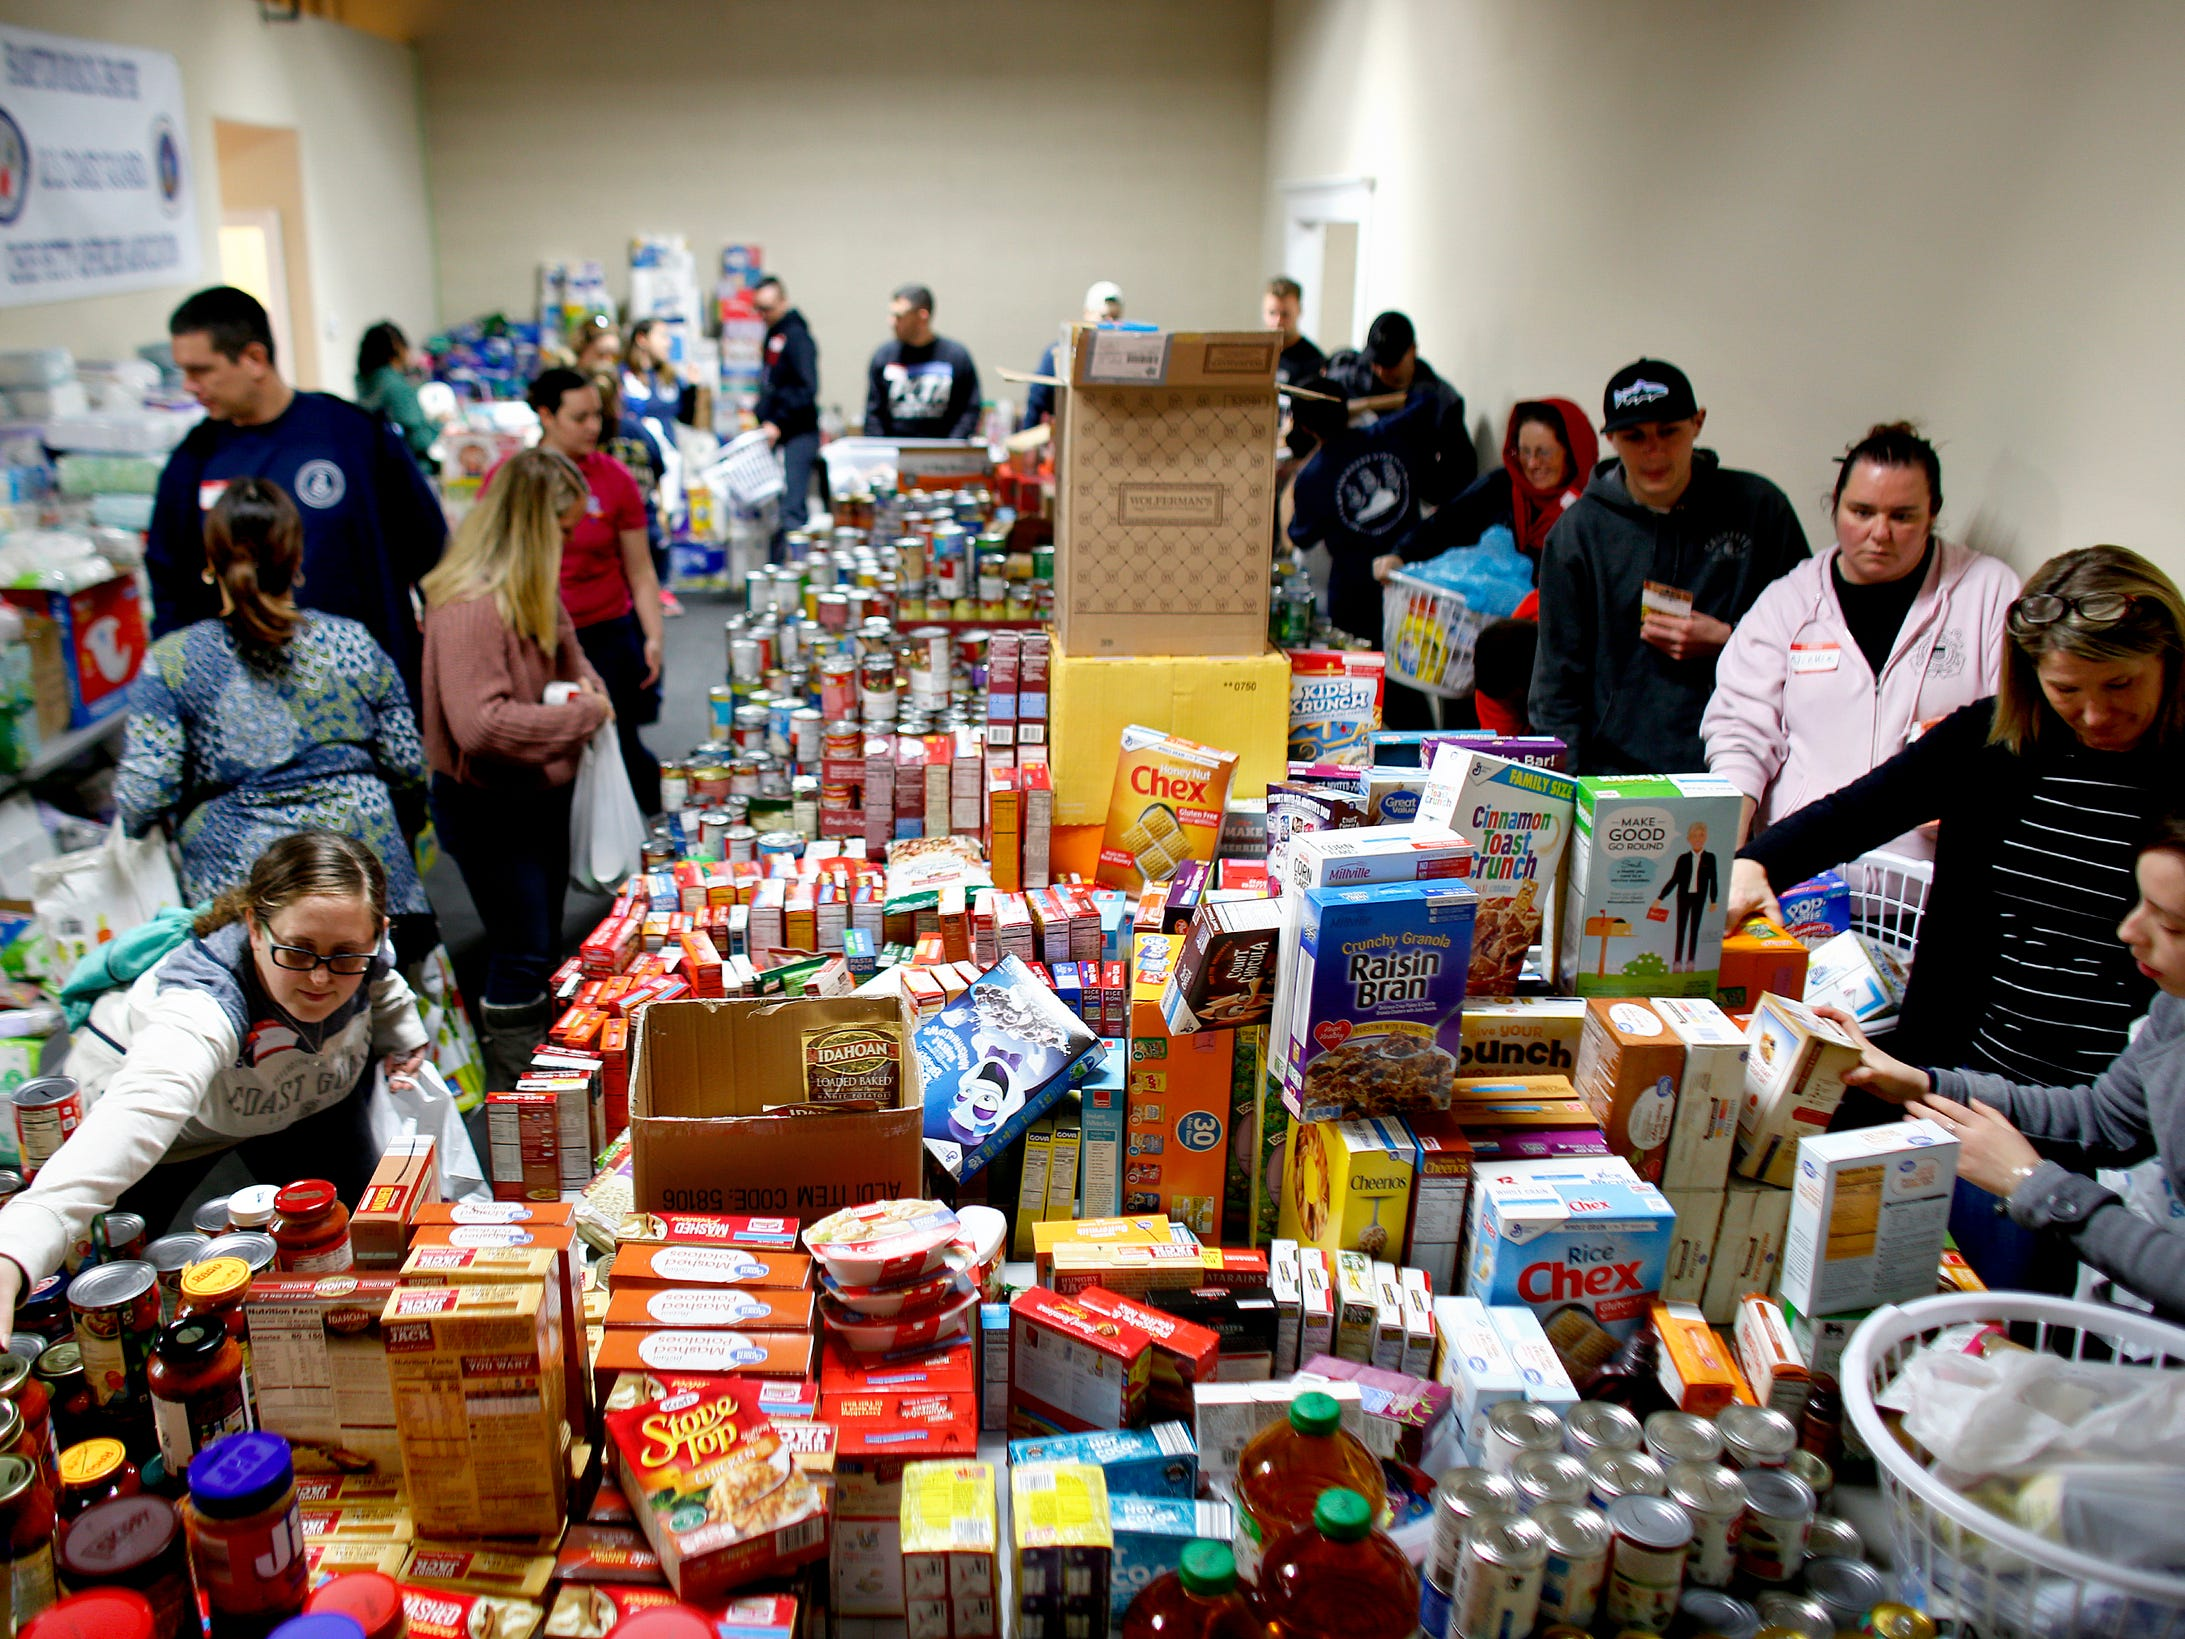 Hundreds of volunteers and recipients Saturday, Jan. 19, 2019 at Help for Hampton Roads Coast Guard Families food drive, sponsored by the Chief Petty Officer Association, in Chesapeake for families affected by the shutdown. (Stephen M. Katz/The Virginian-Pilot via AP) ORG XMIT: VANOV102